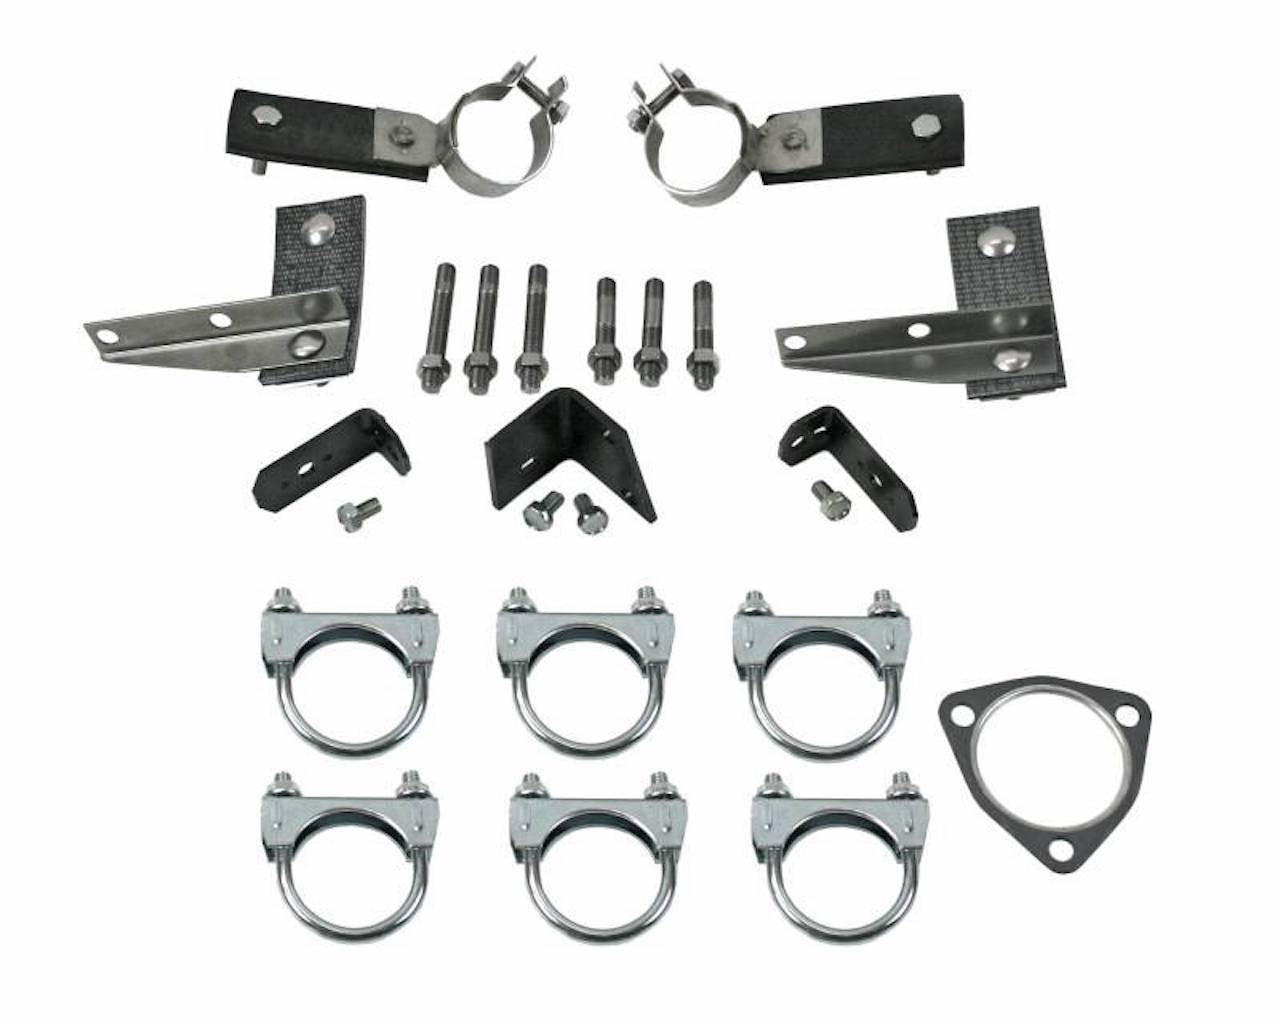 1957 Chevy V-8 Dual Exhaust Hanger Kit